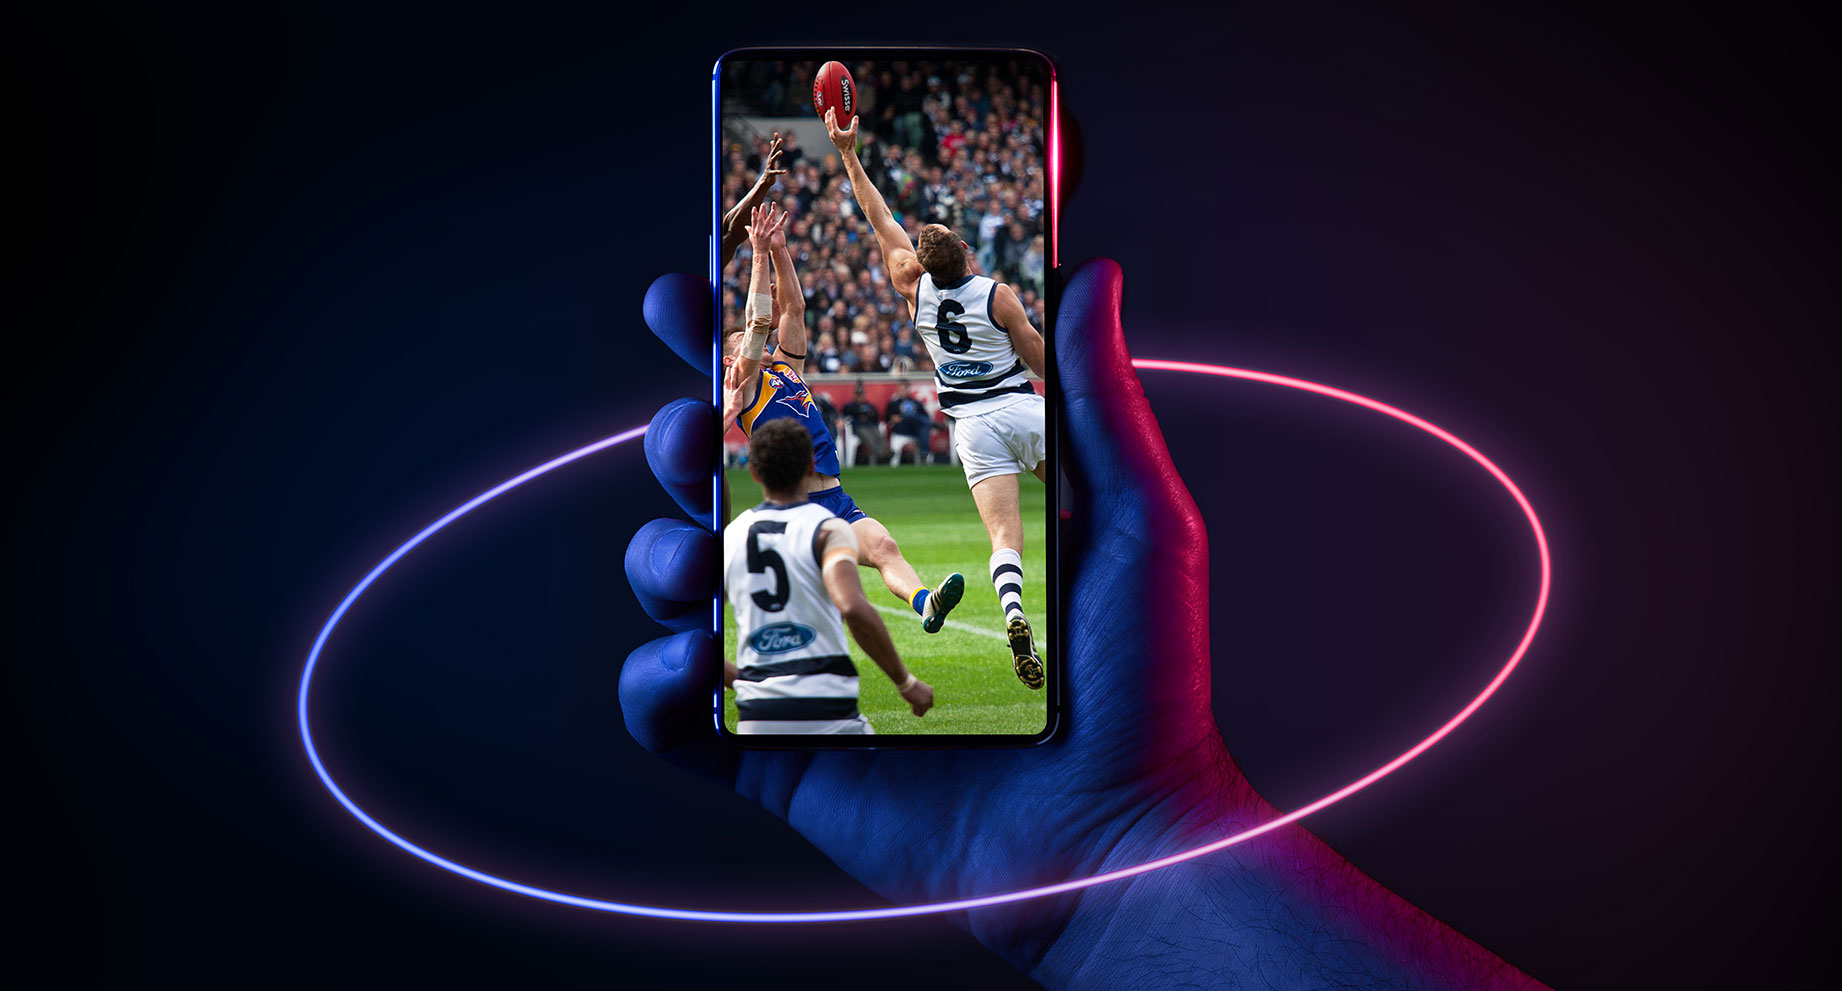 Hand of power holding phone streaming AFL football